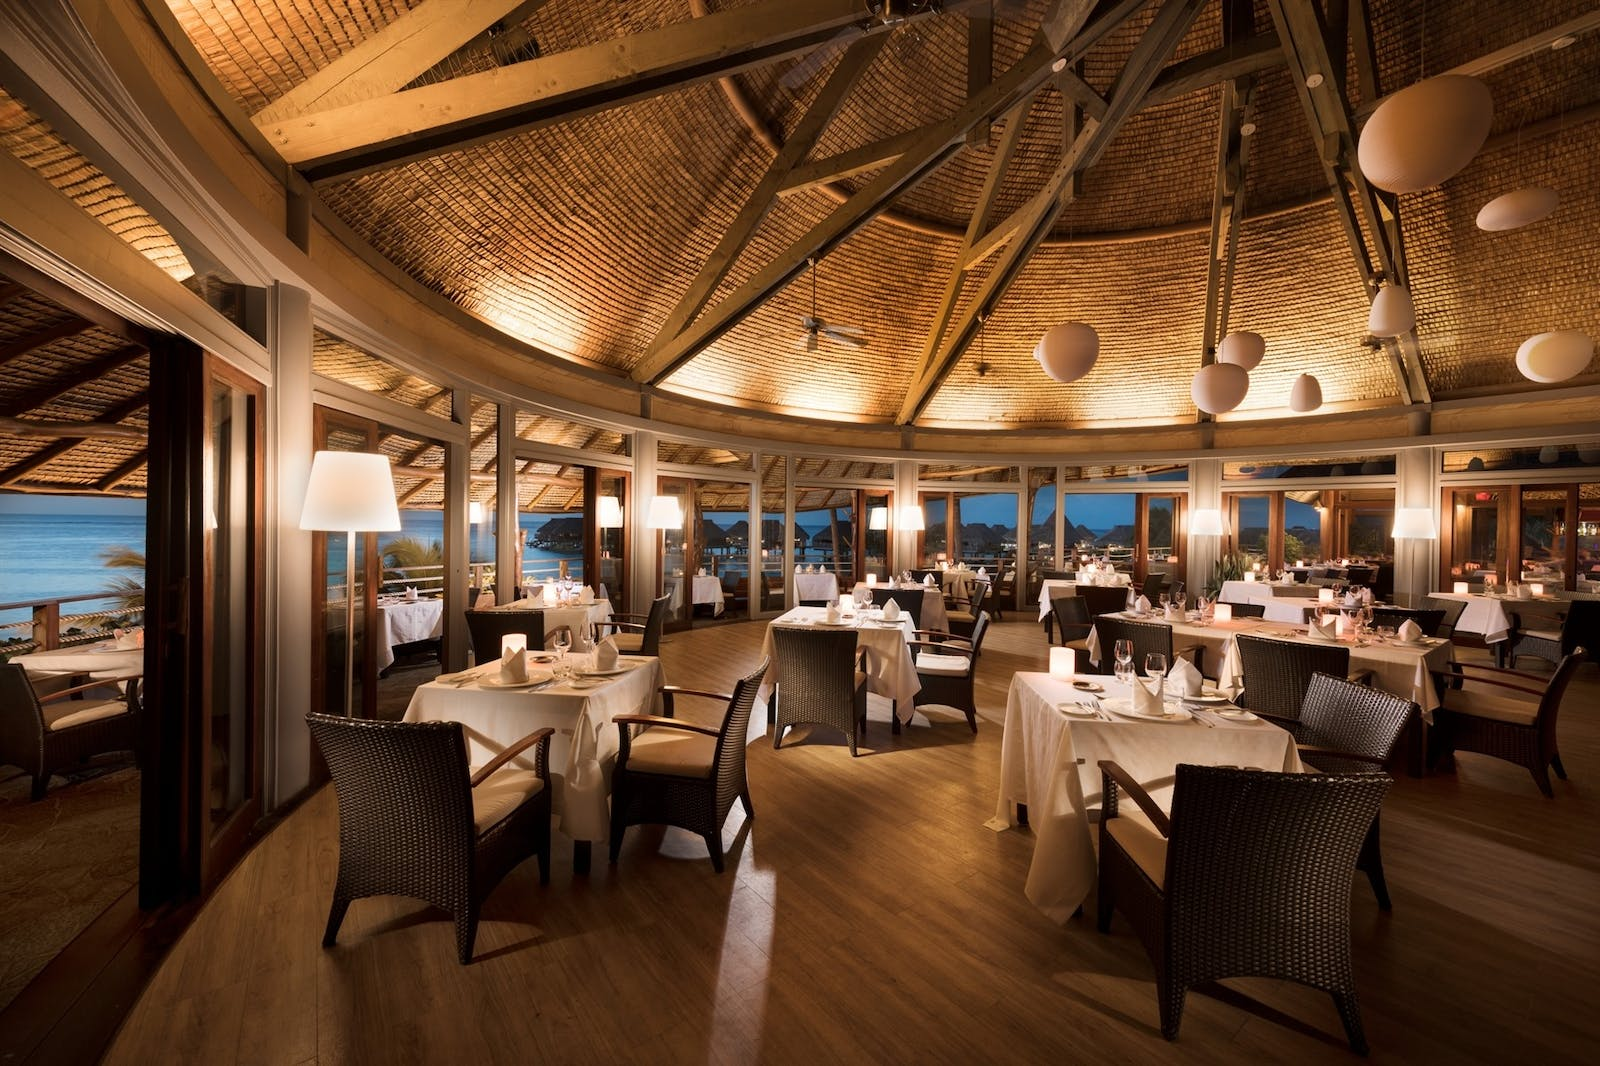 Arri Vahine Restaurant at Hilton Moorea Lagoon Resort & Spa, French Polynesia